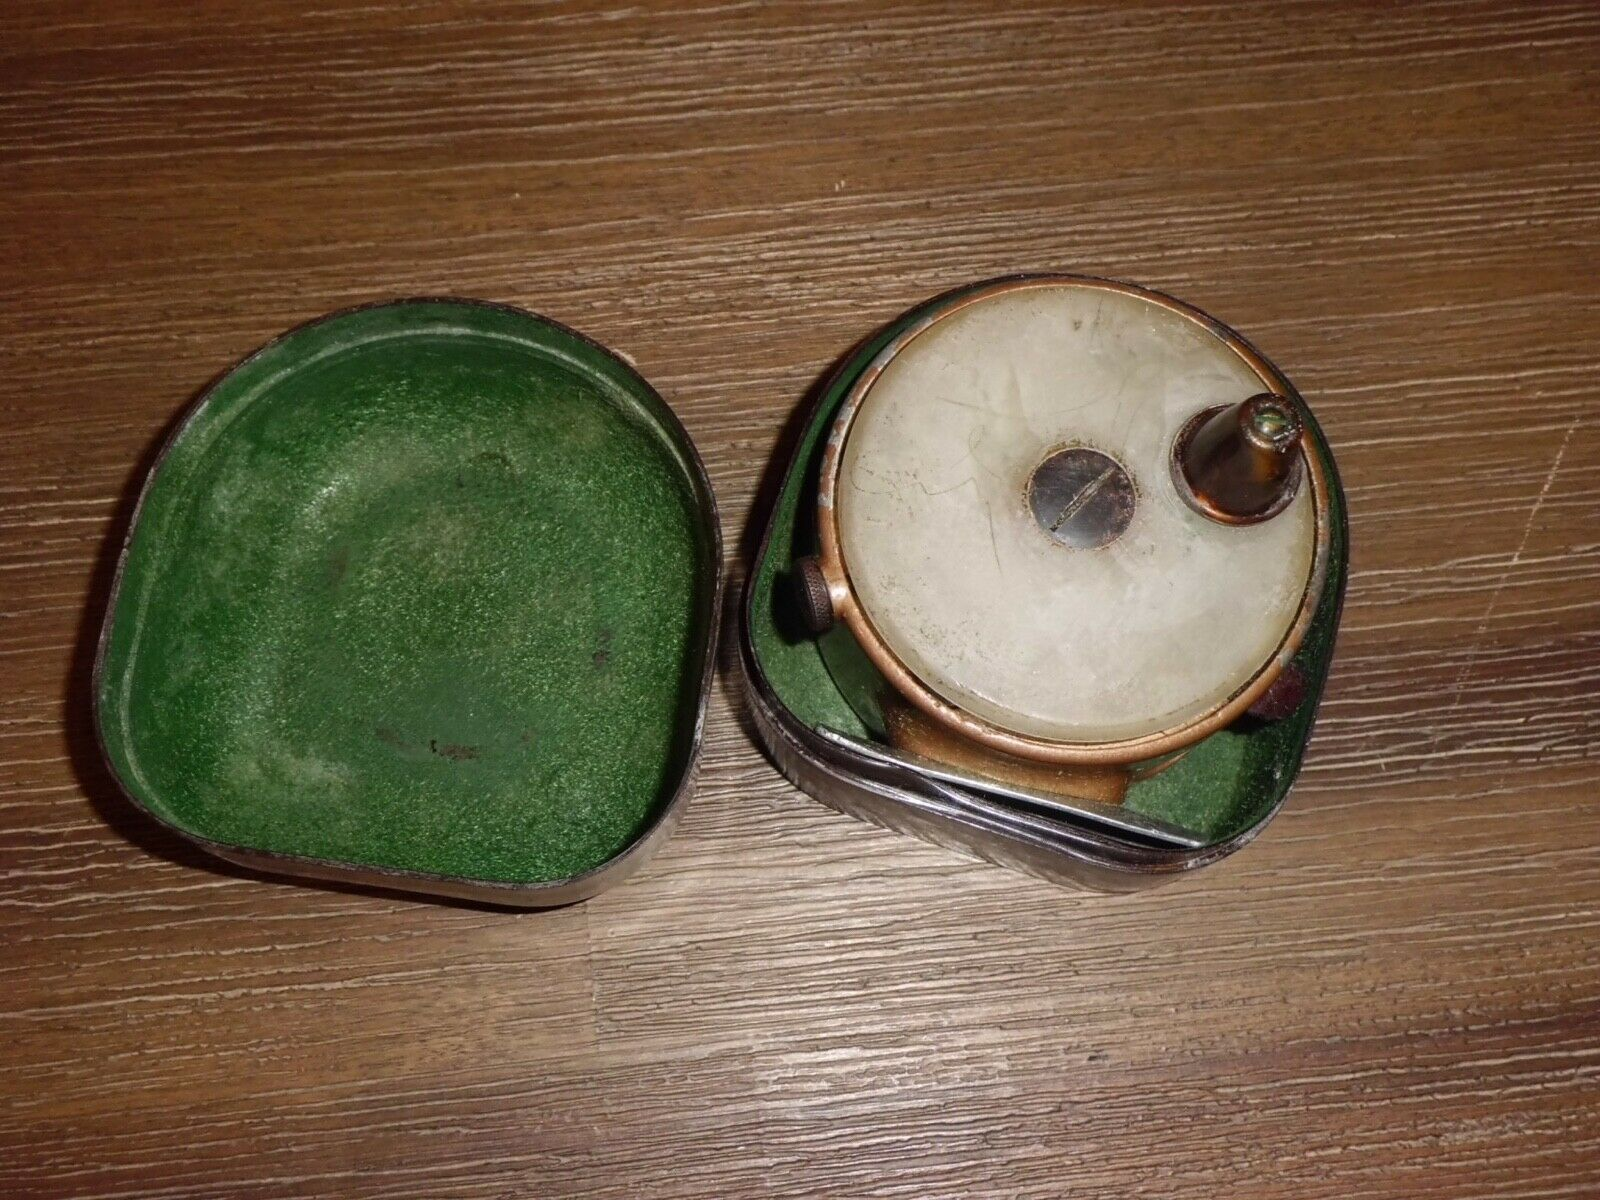 Vintage PRECISIONBILT MOSQUITO Fly Reel made in USA w  Original Container